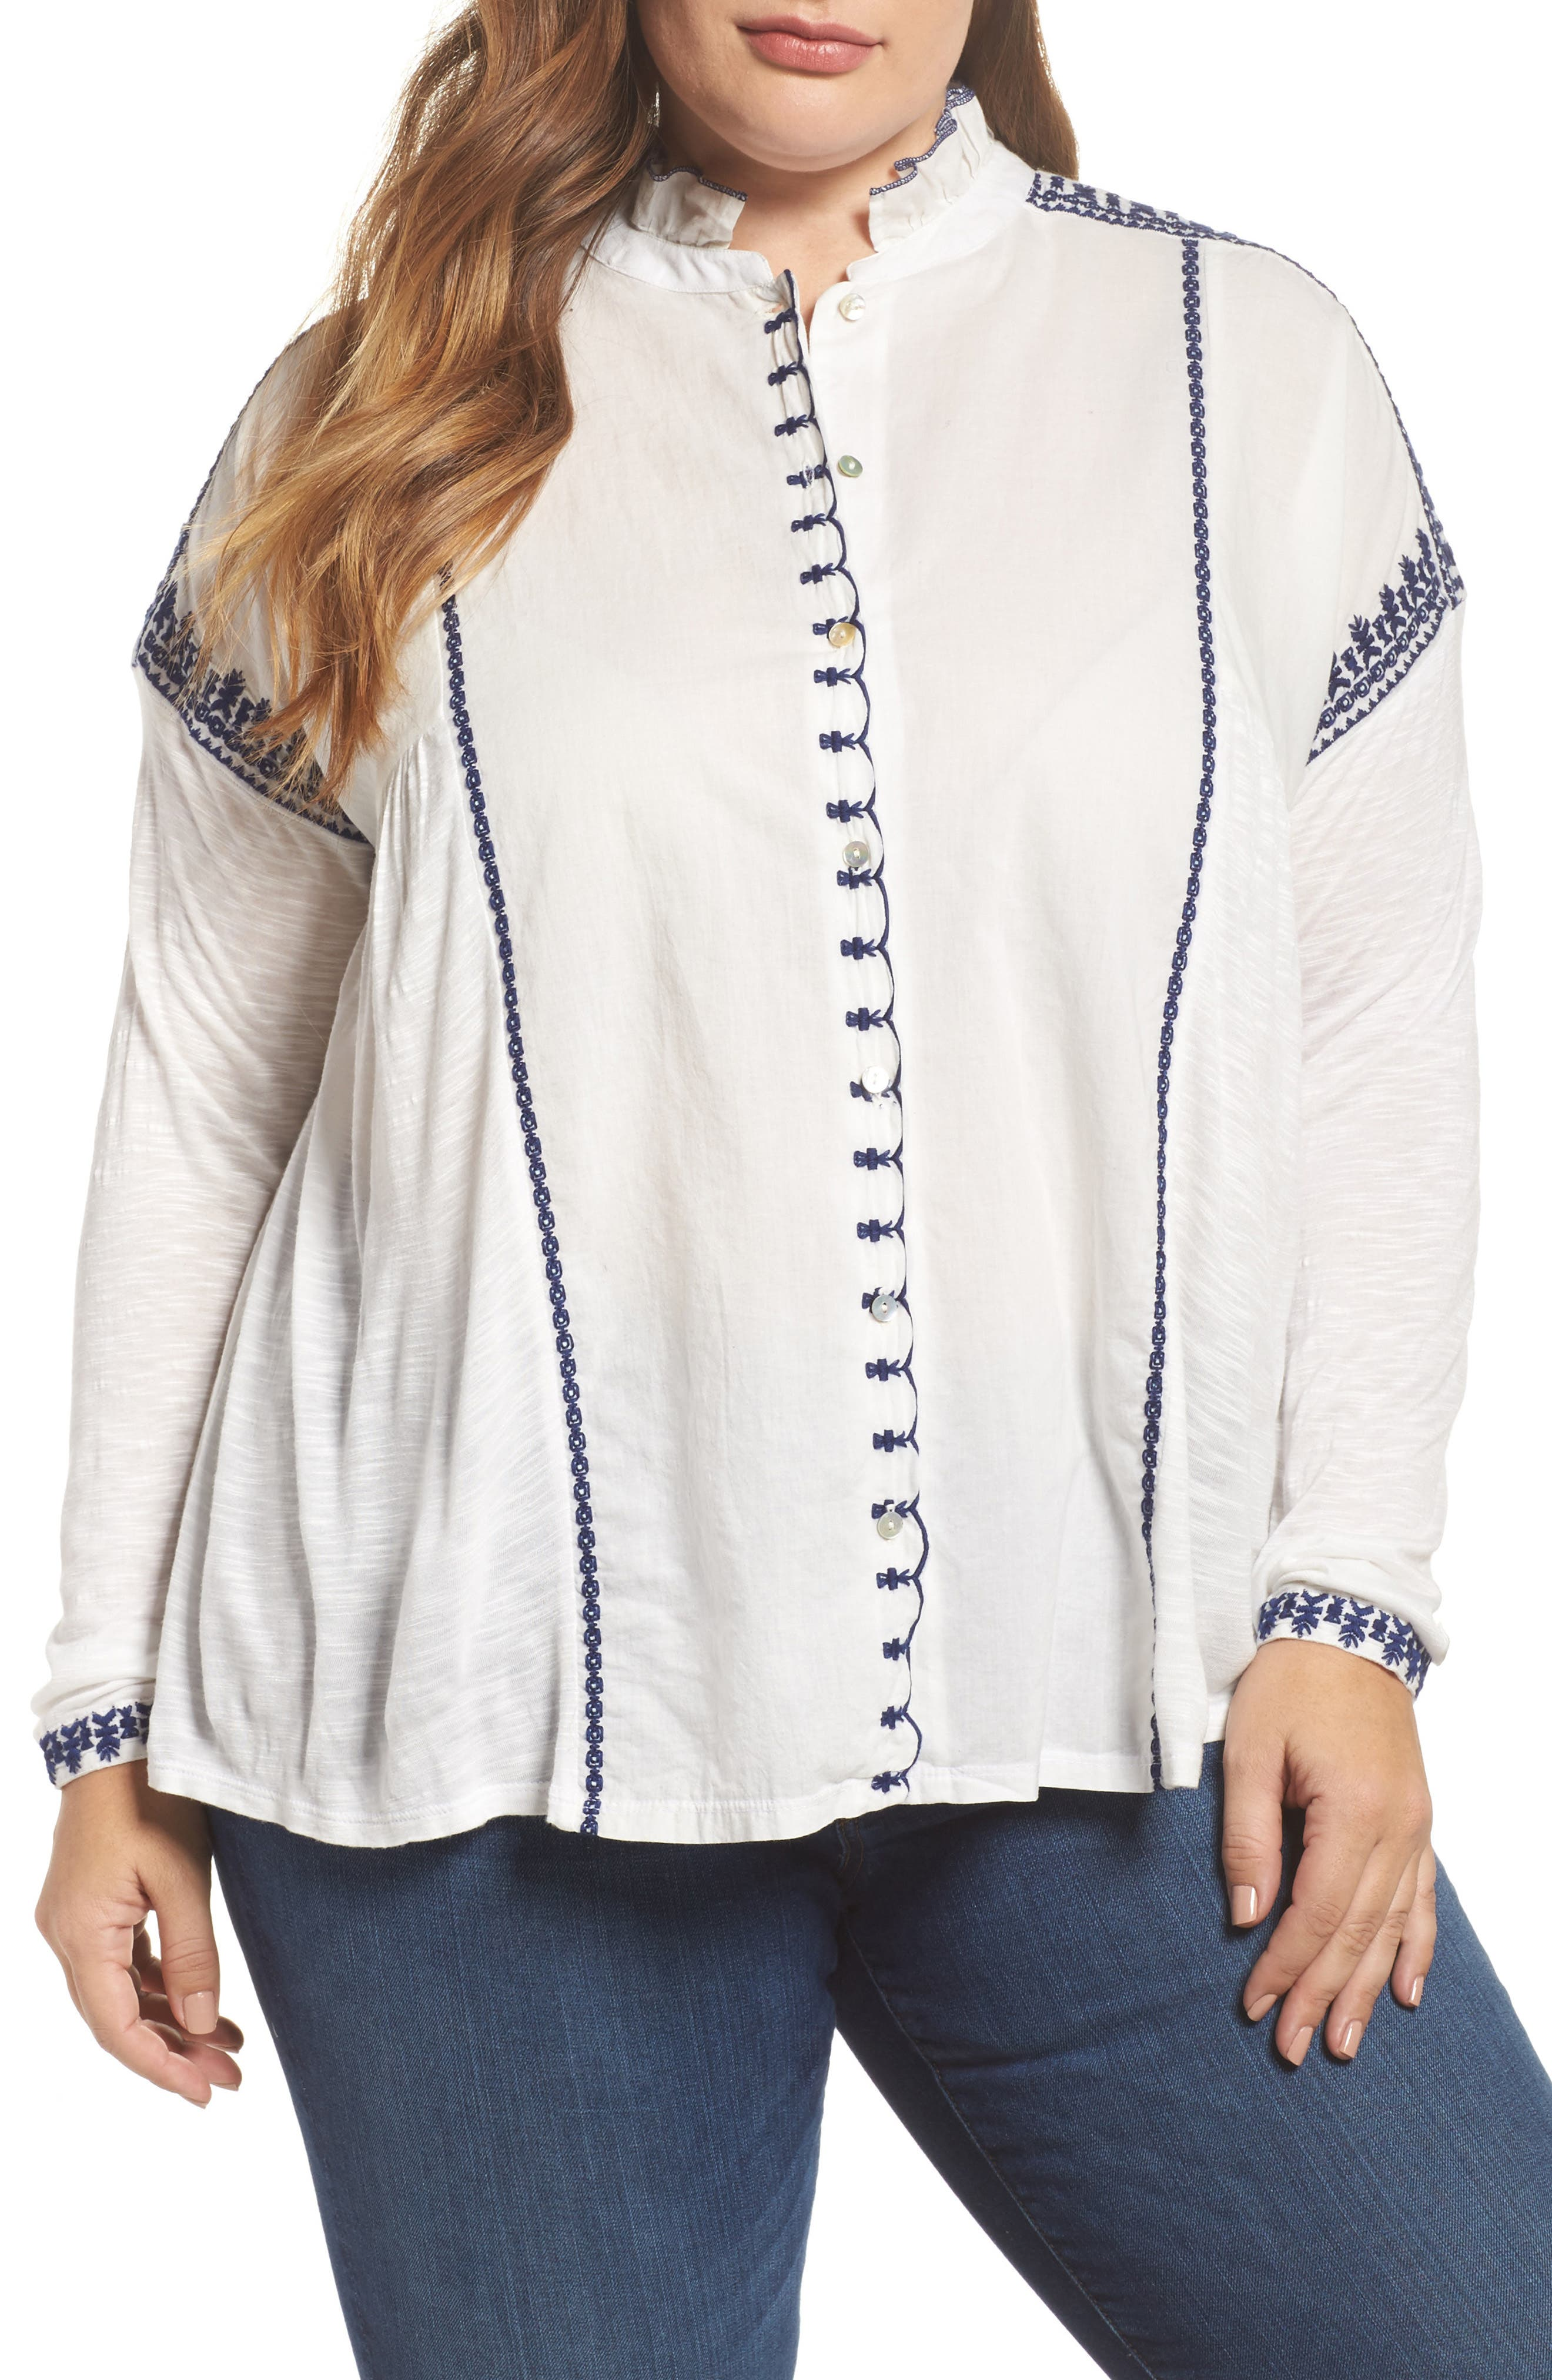 Embroidered Mixed Media Top,                         Main,                         color, Marshmallow